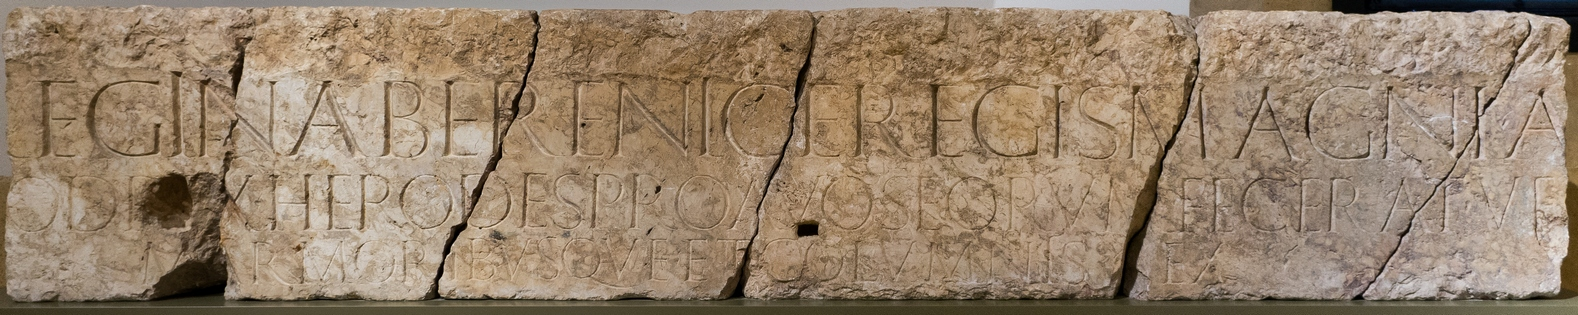 Beirut, Inscription mentioning Queen Berenice and King Agrippa II